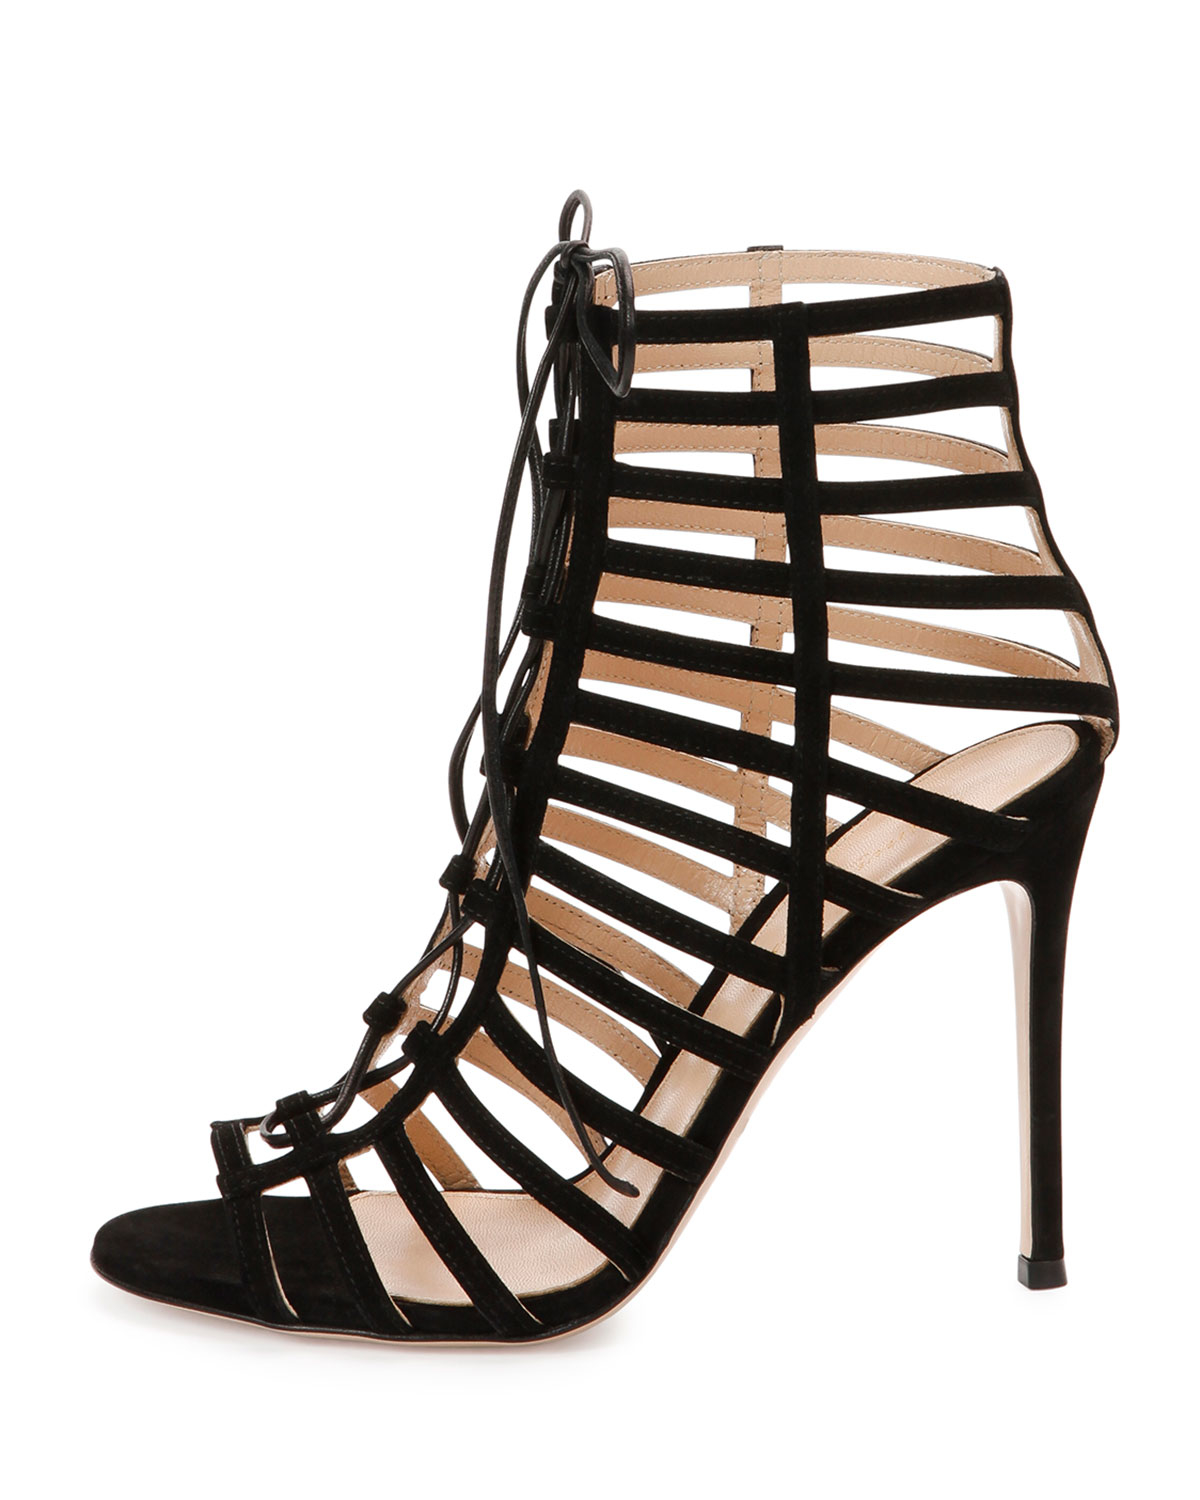 52298438b9b5 Lyst - Gianvito Rossi Suede Caged Lace-up Sandal in Black